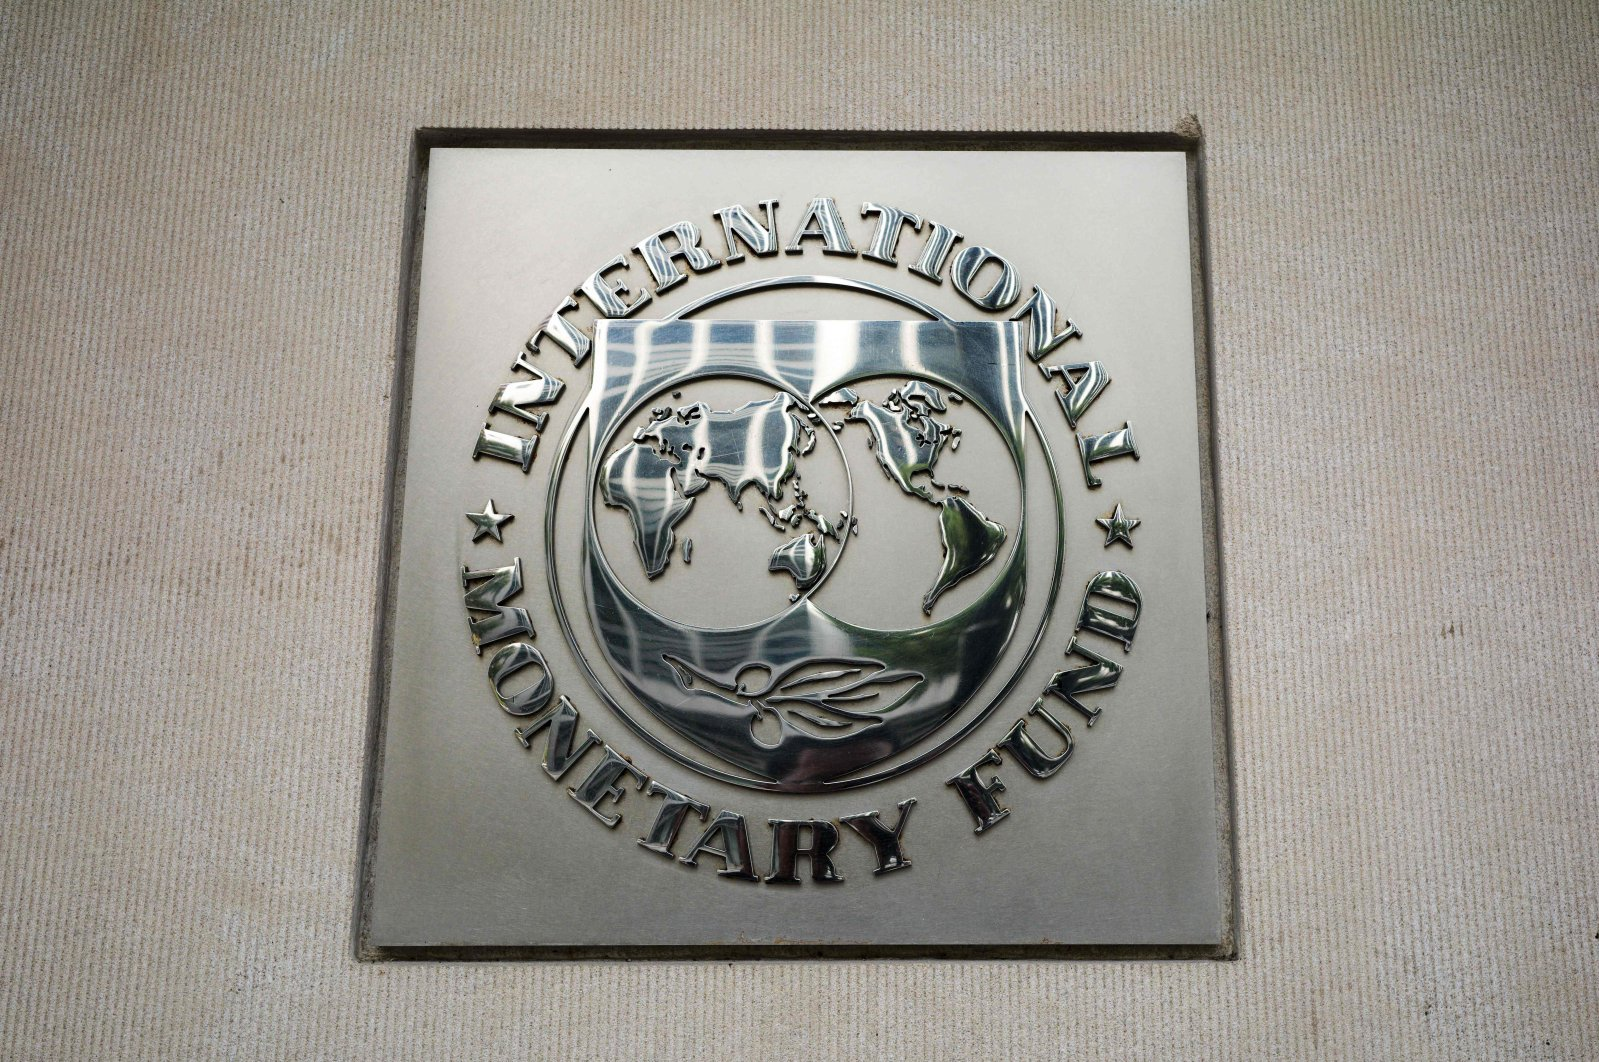 The seal of the International Monetary Fund (IMF) is seen outside of its headquarters in Washington, D.C., U.S., Oct. 7, 2021. (AFP Photo)